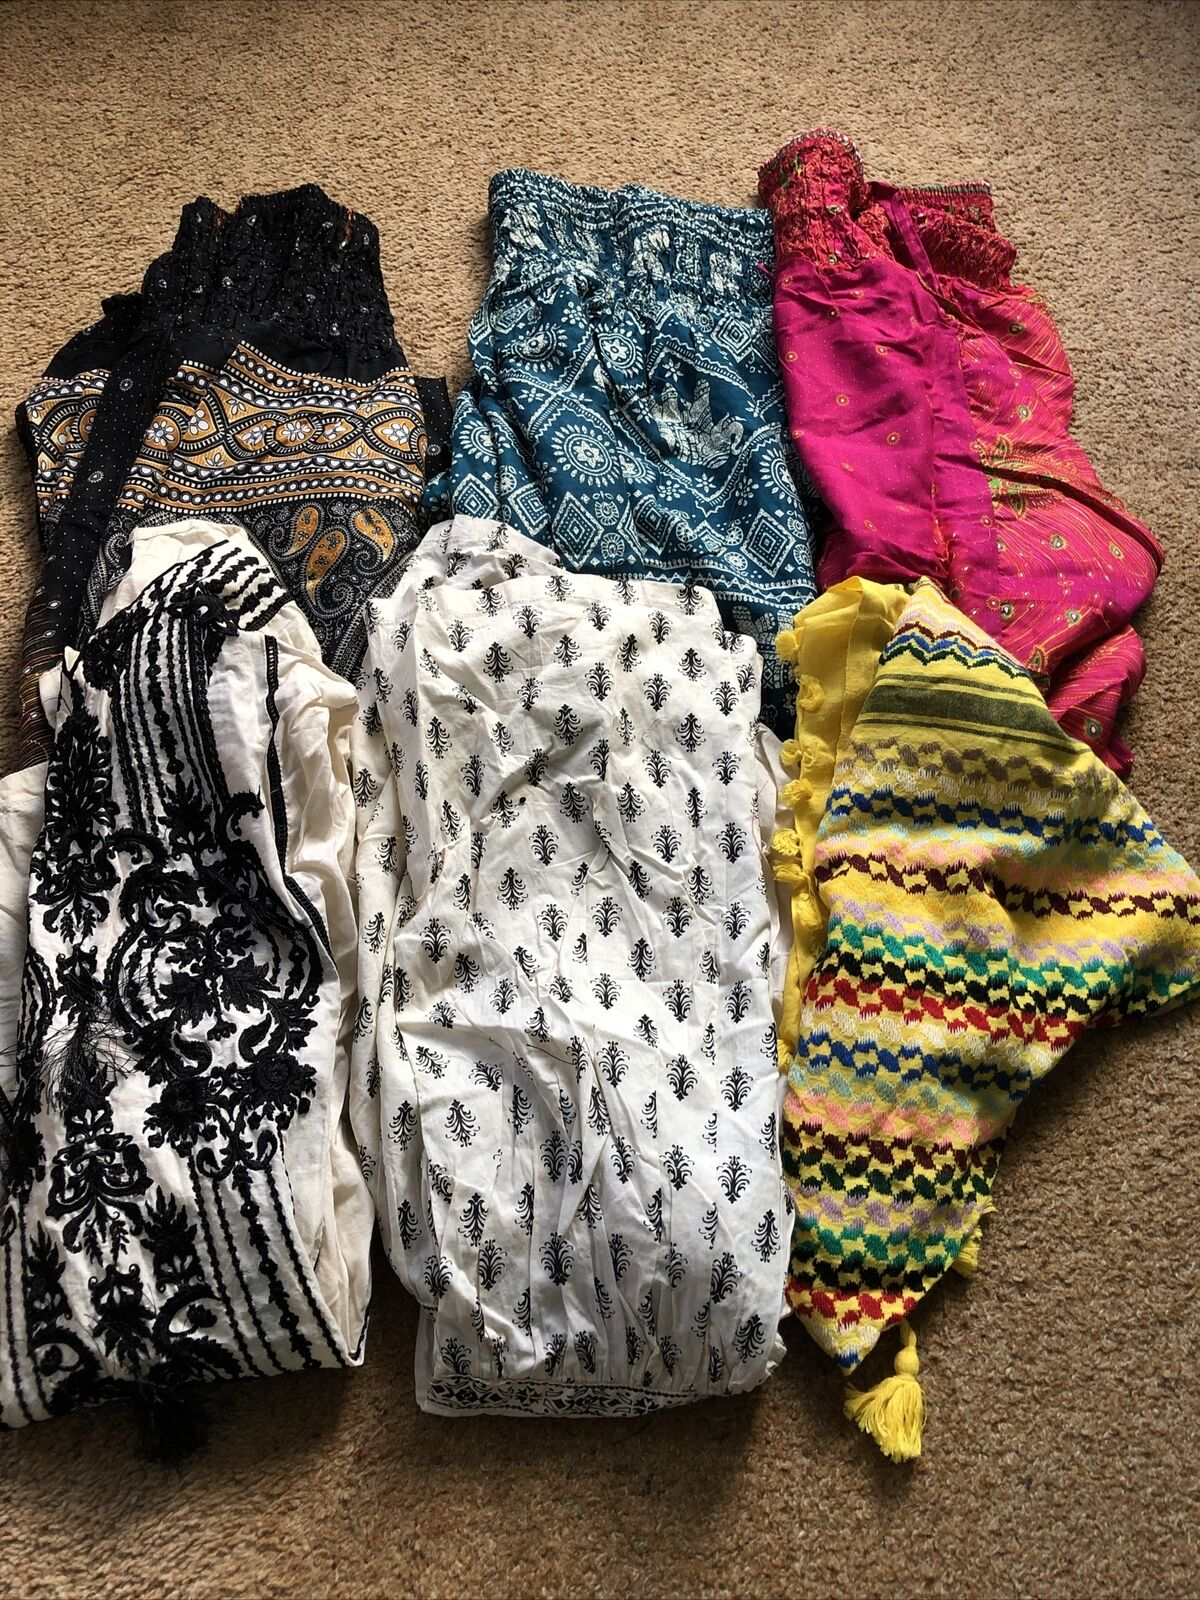 Women's Asian Clothing - Job Lot - 6 Items - Size Small - All New